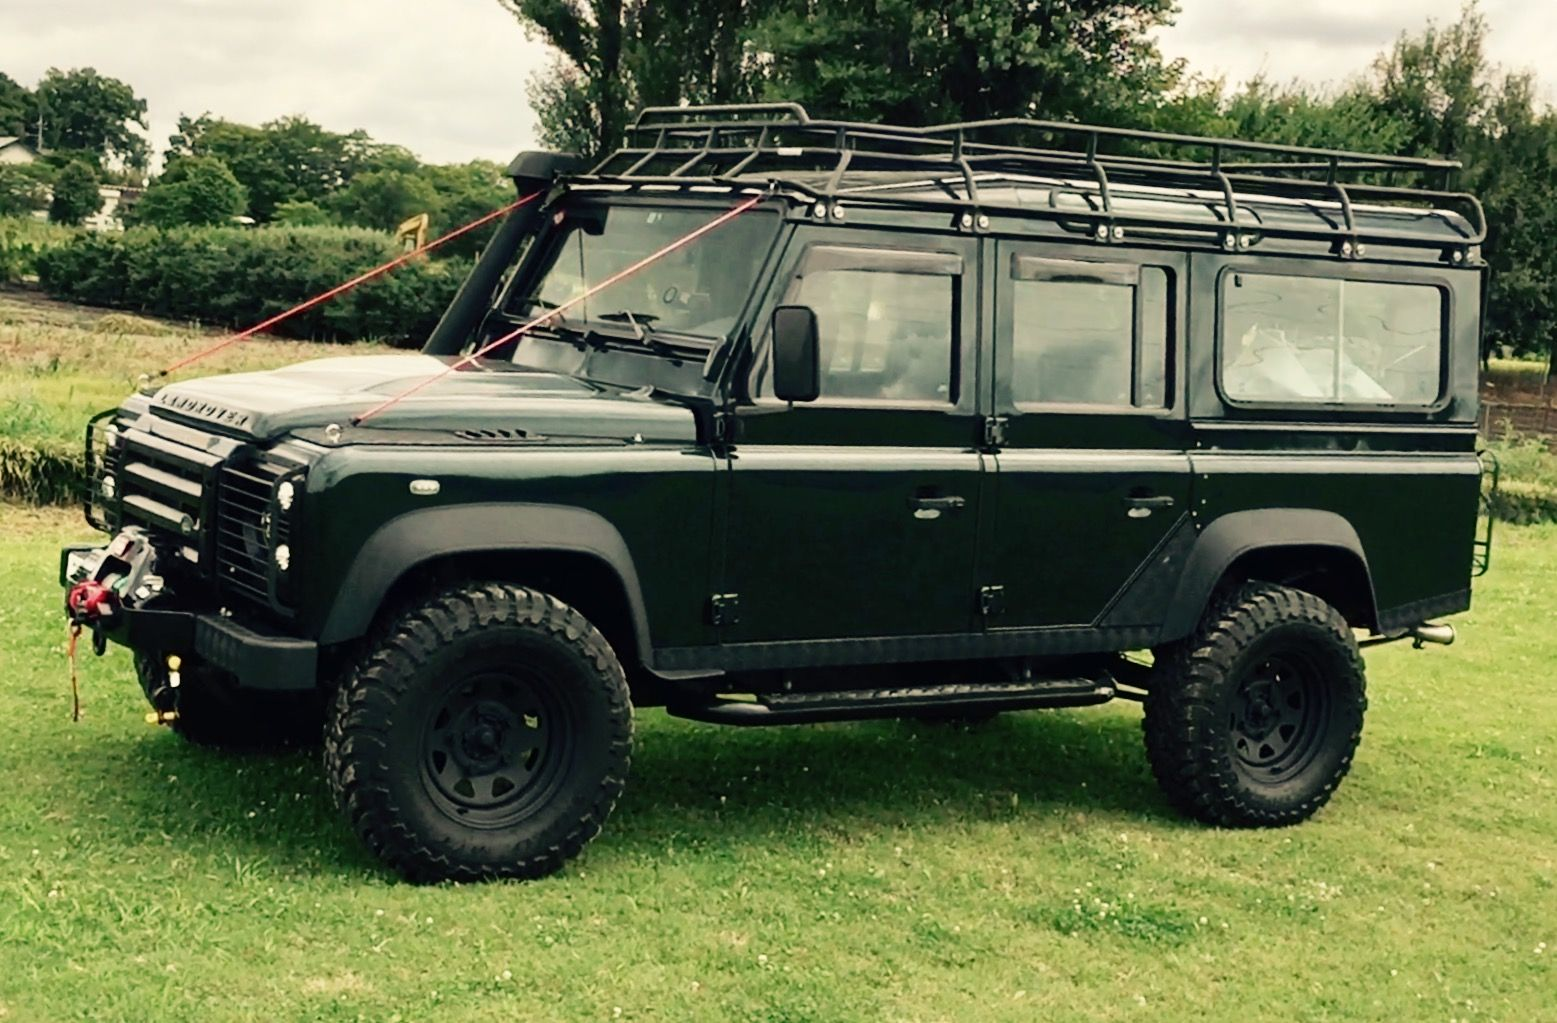 Mobile Home in Land Rover Defender